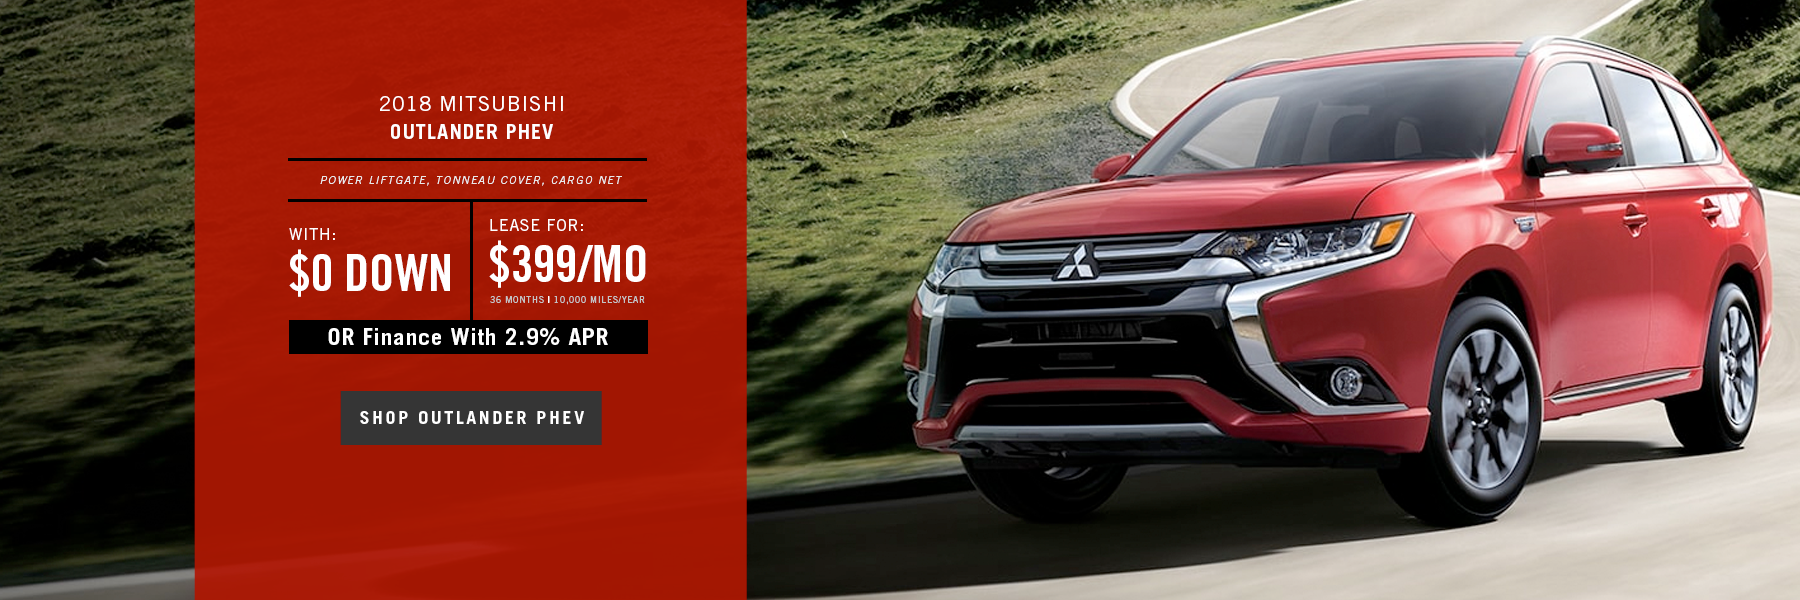 Mitsubishi Outlander PHEV Special Offer